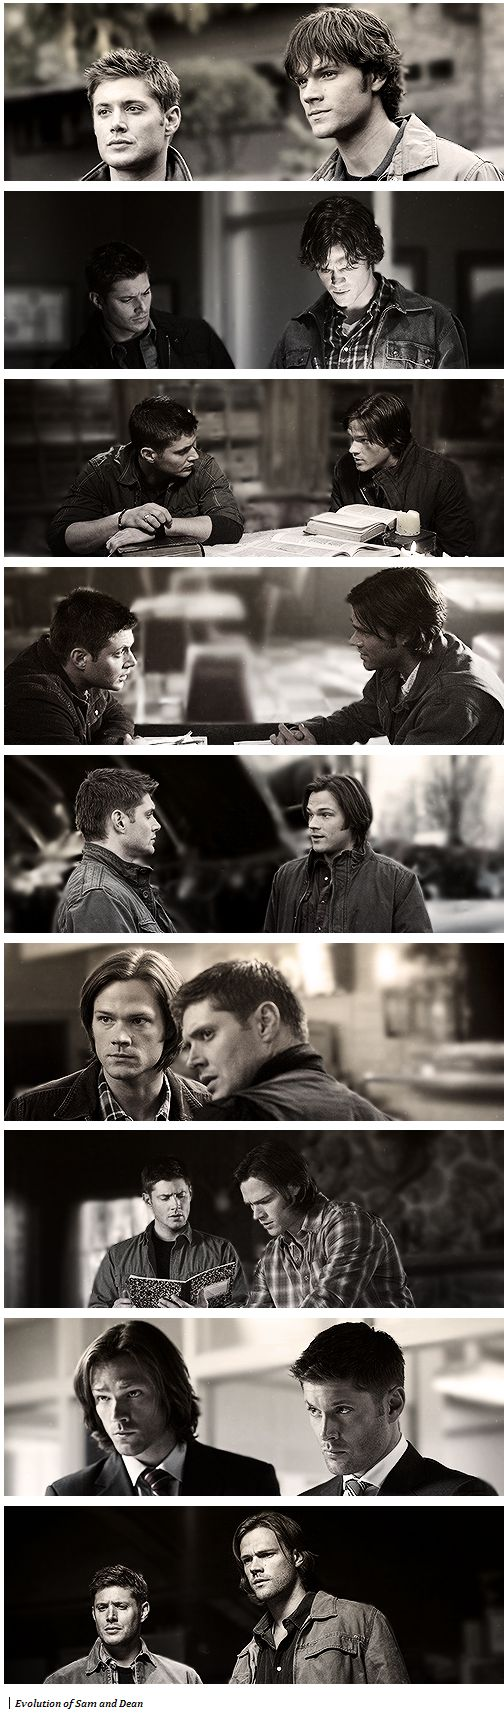 The (ridiculously gorgeous) evolution of Sam and Dean Winchester.